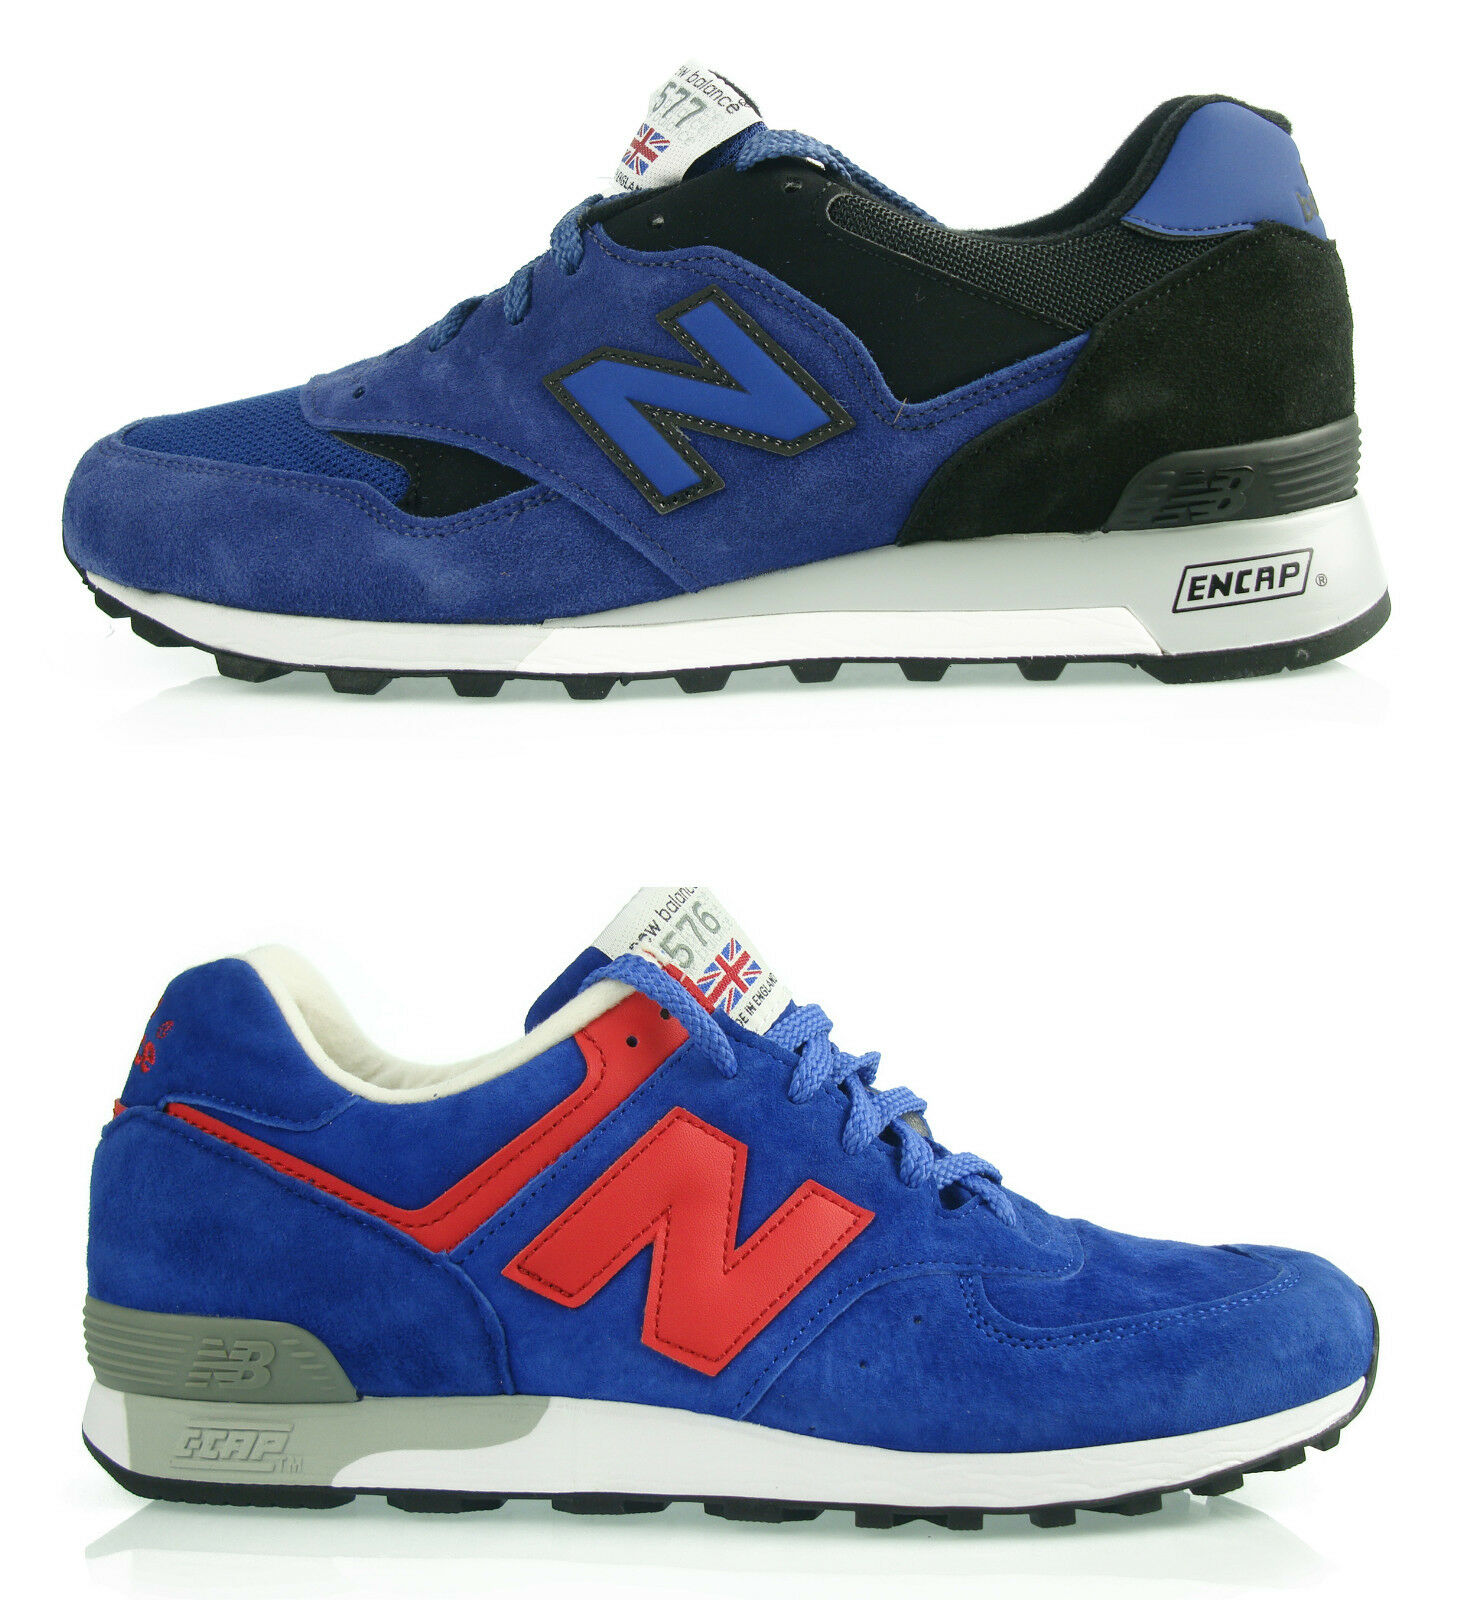 ME NEW BALANCE men's shoes Sneakers MAN HERRENSHUHE shoes 100% AUTHENTIC